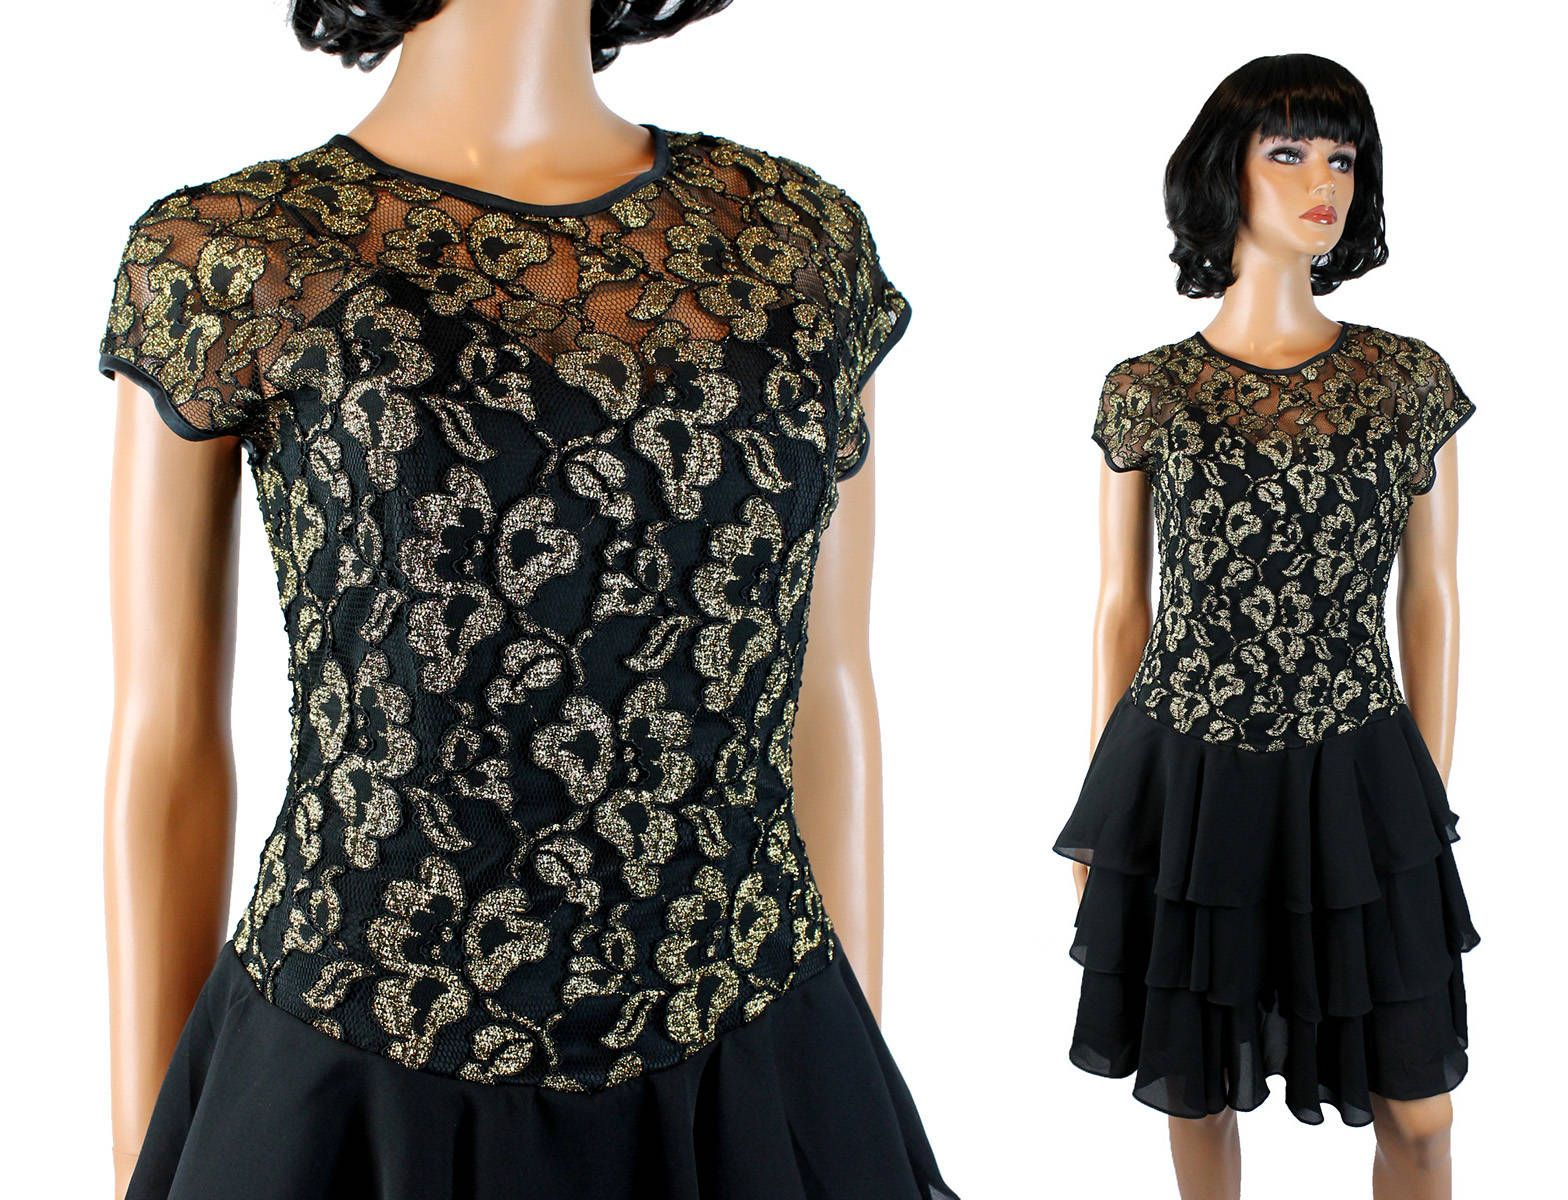 80s Prom Gown S M Black Gold Lace Tiered Chiffon Vintage Cocktail ...